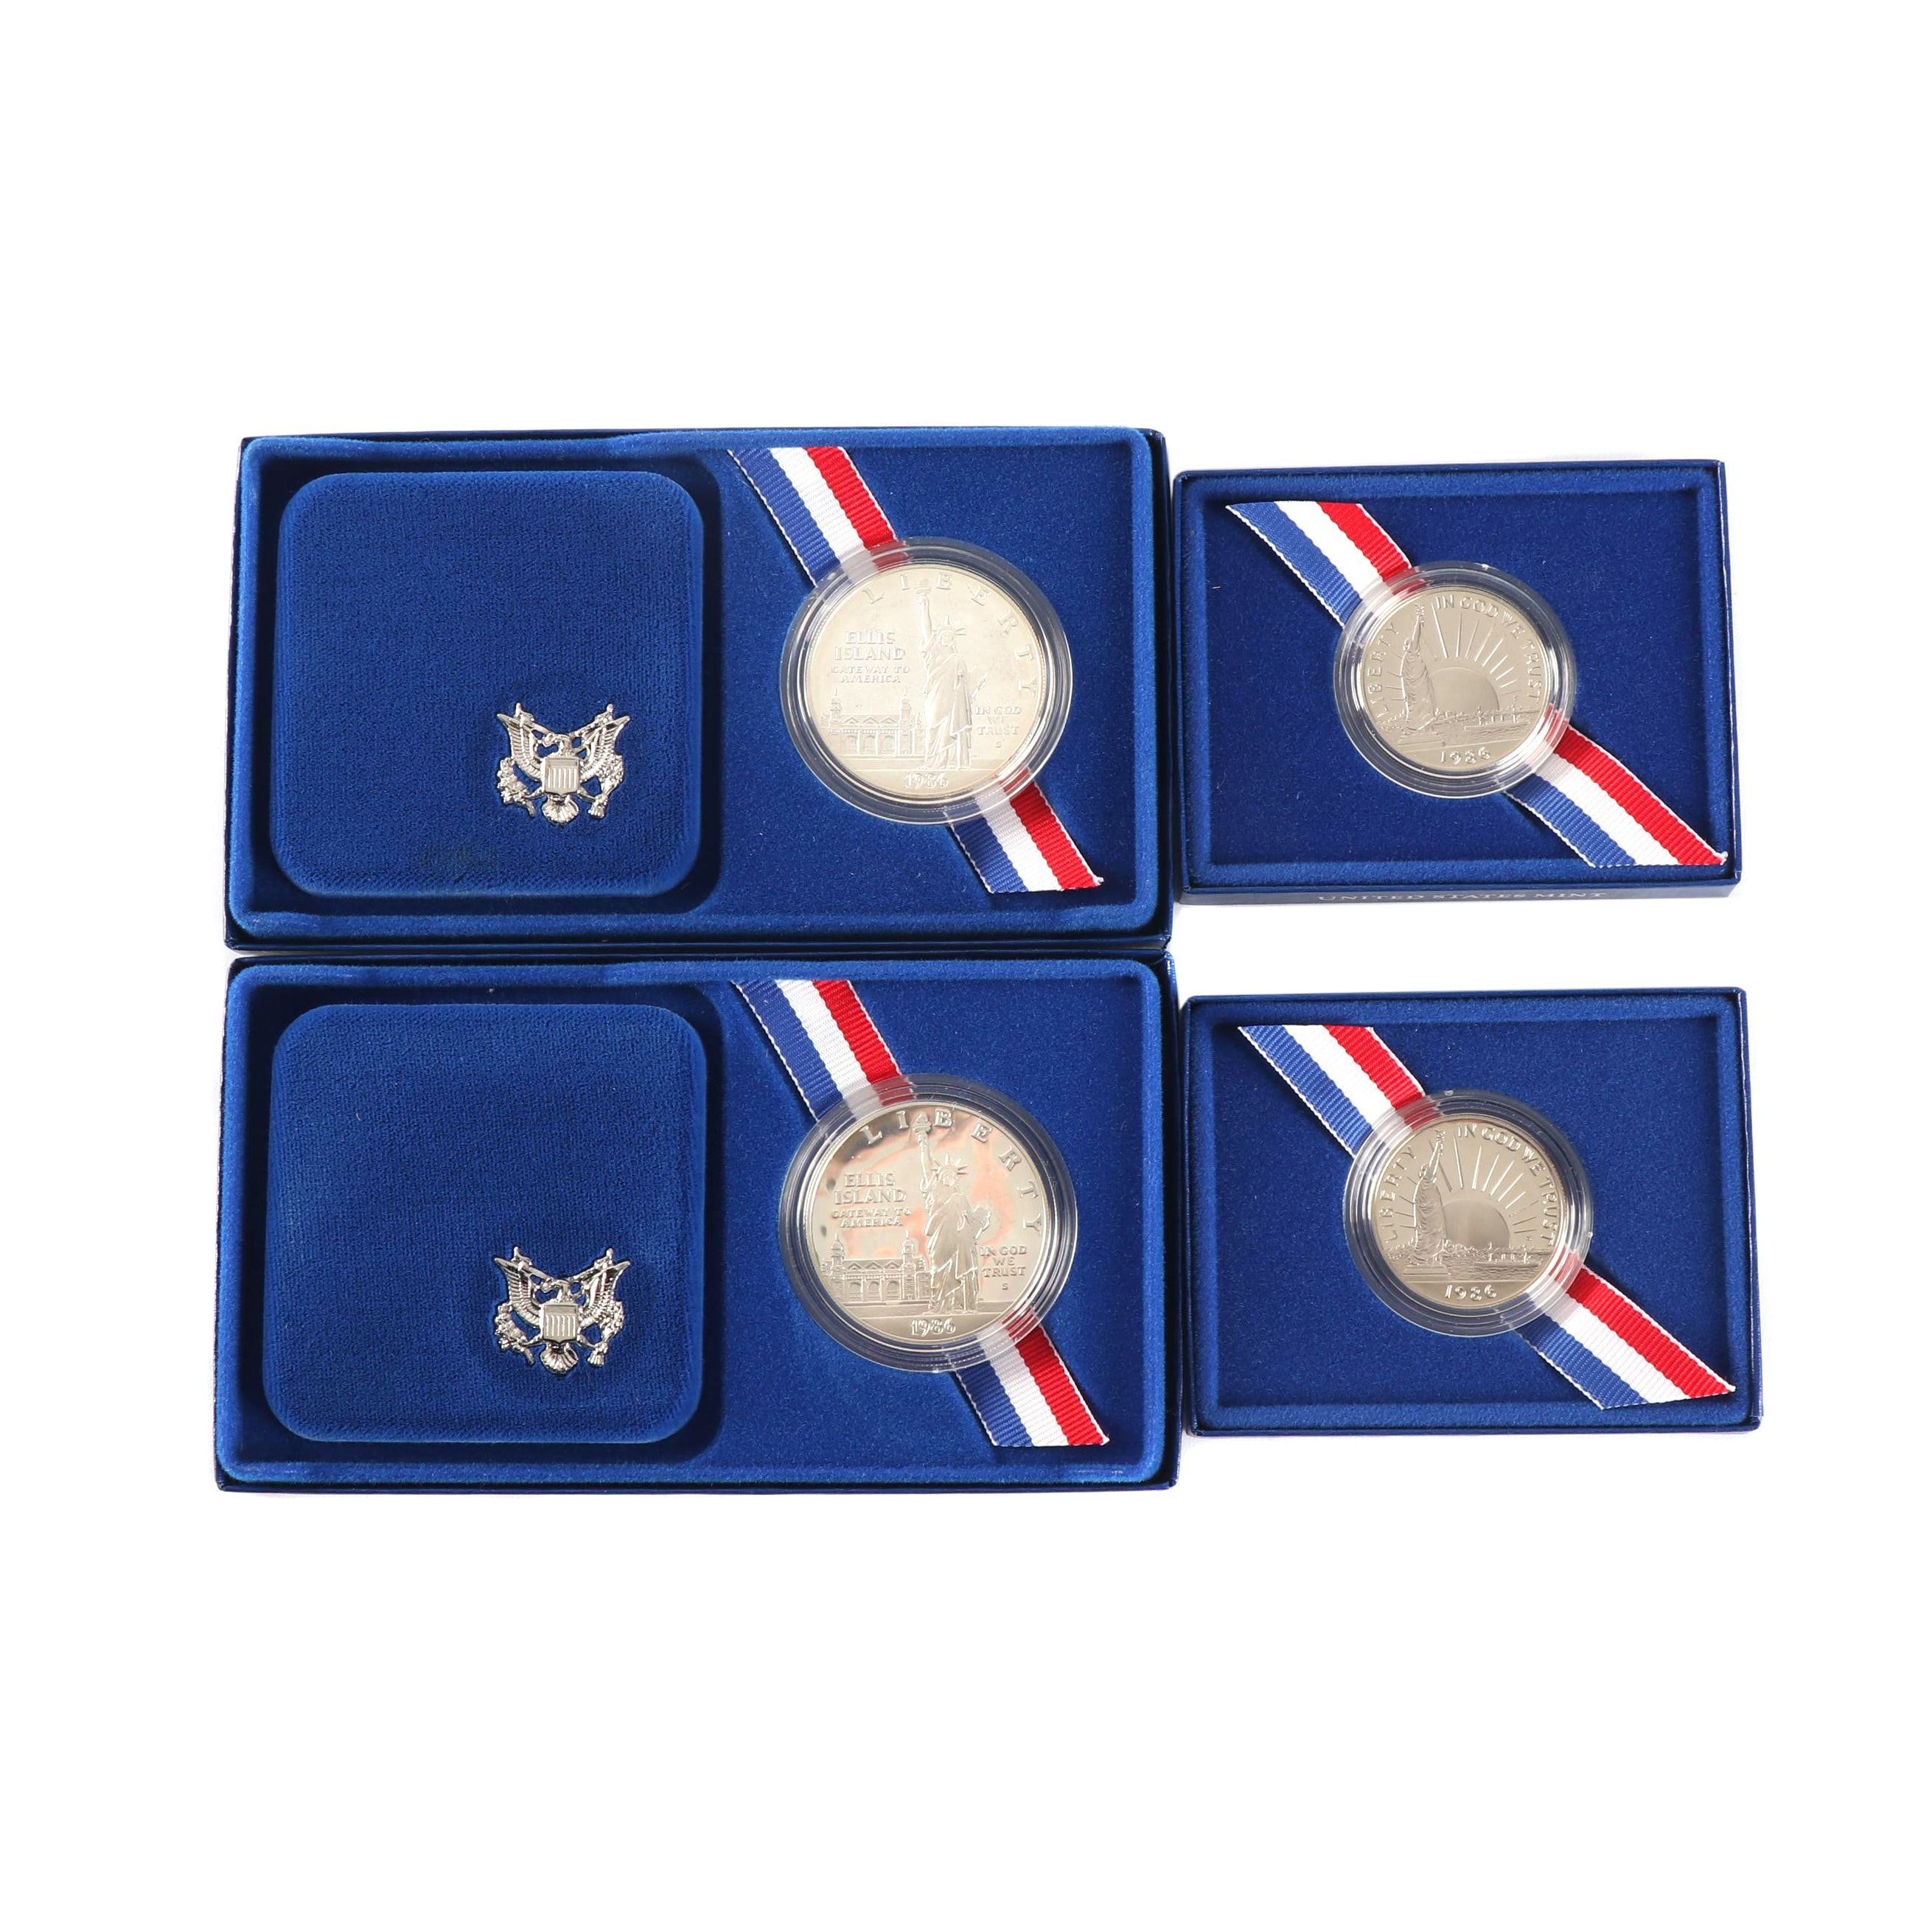 1986-S U.S. Mint Statue of Liberty Centennial Commemorative Coin Sets